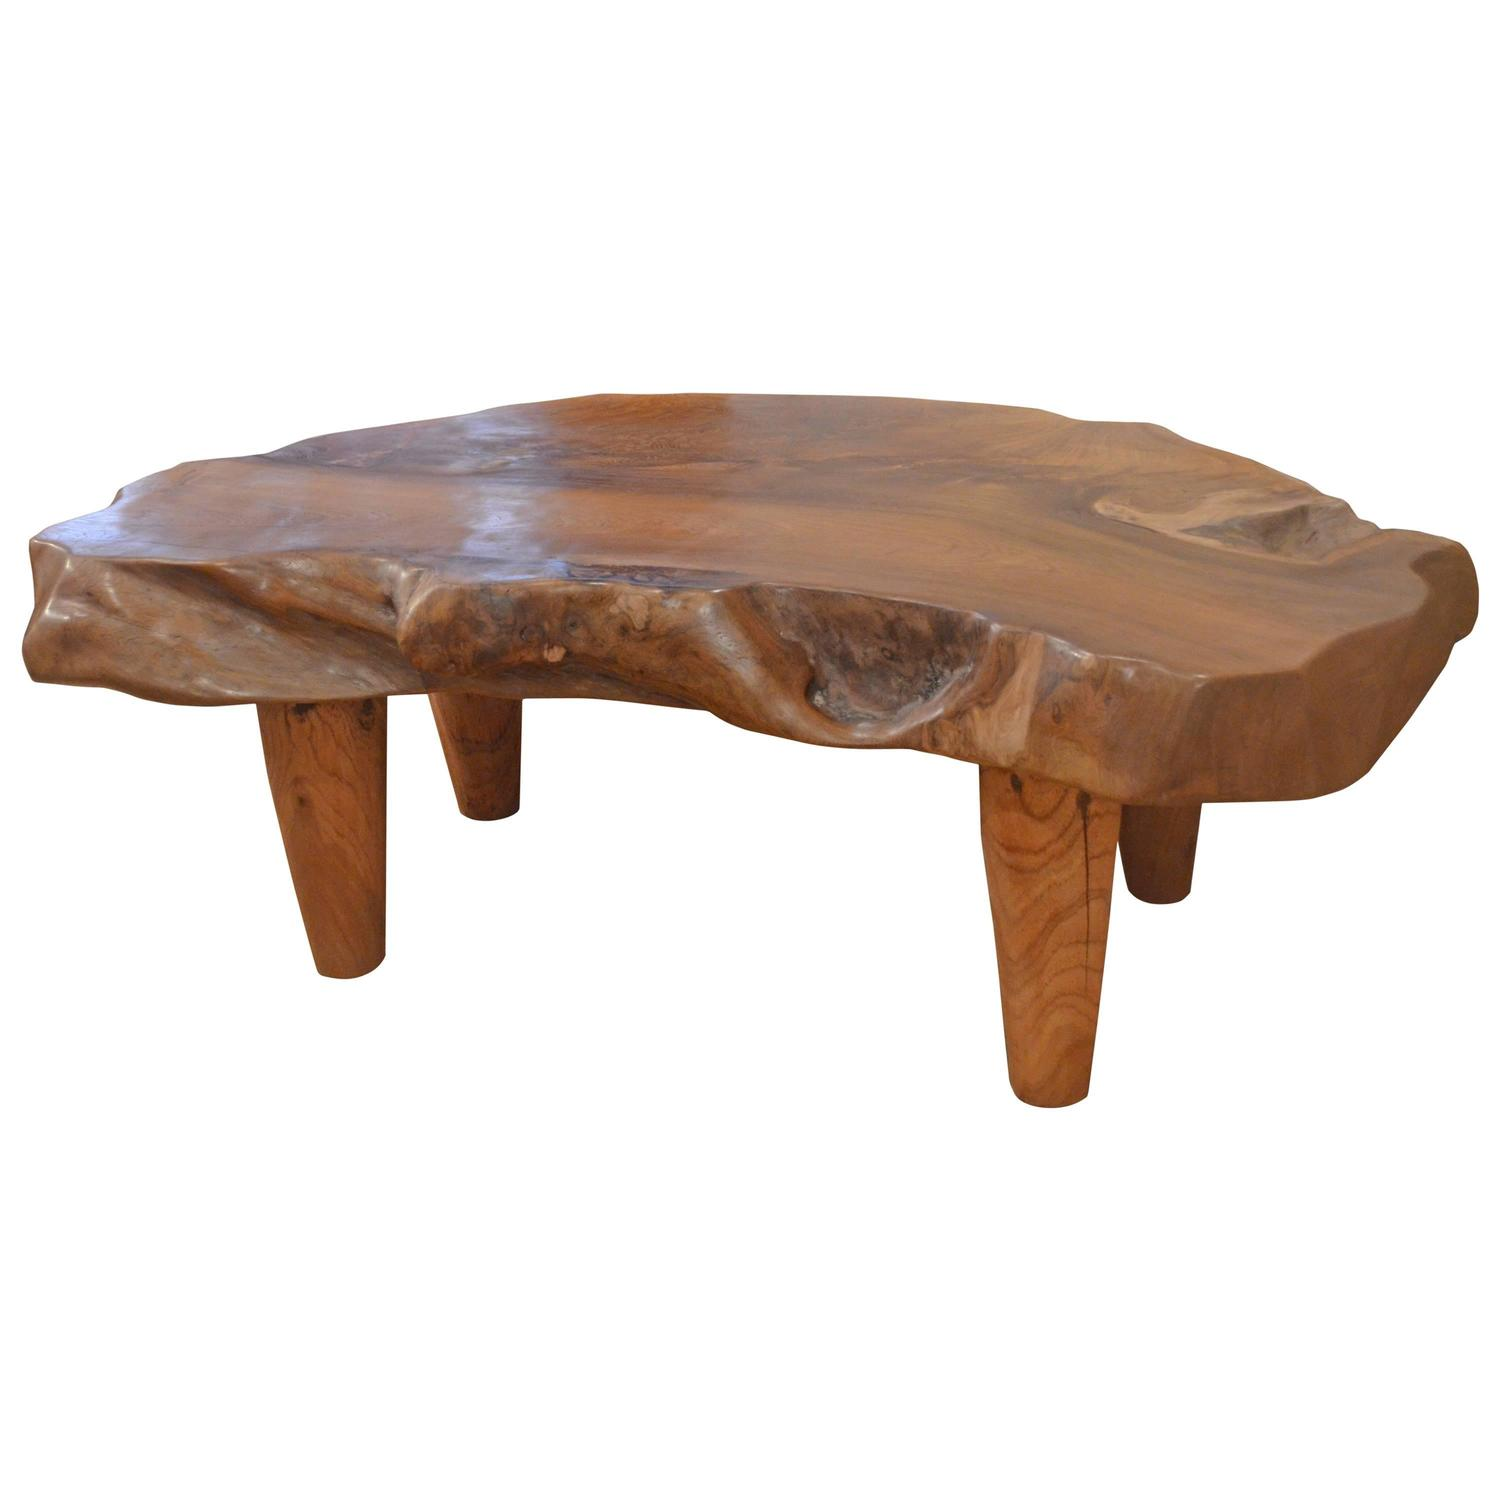 Natural teak wood coffee table for sale at 1stdibs for Wooden coffee tables images